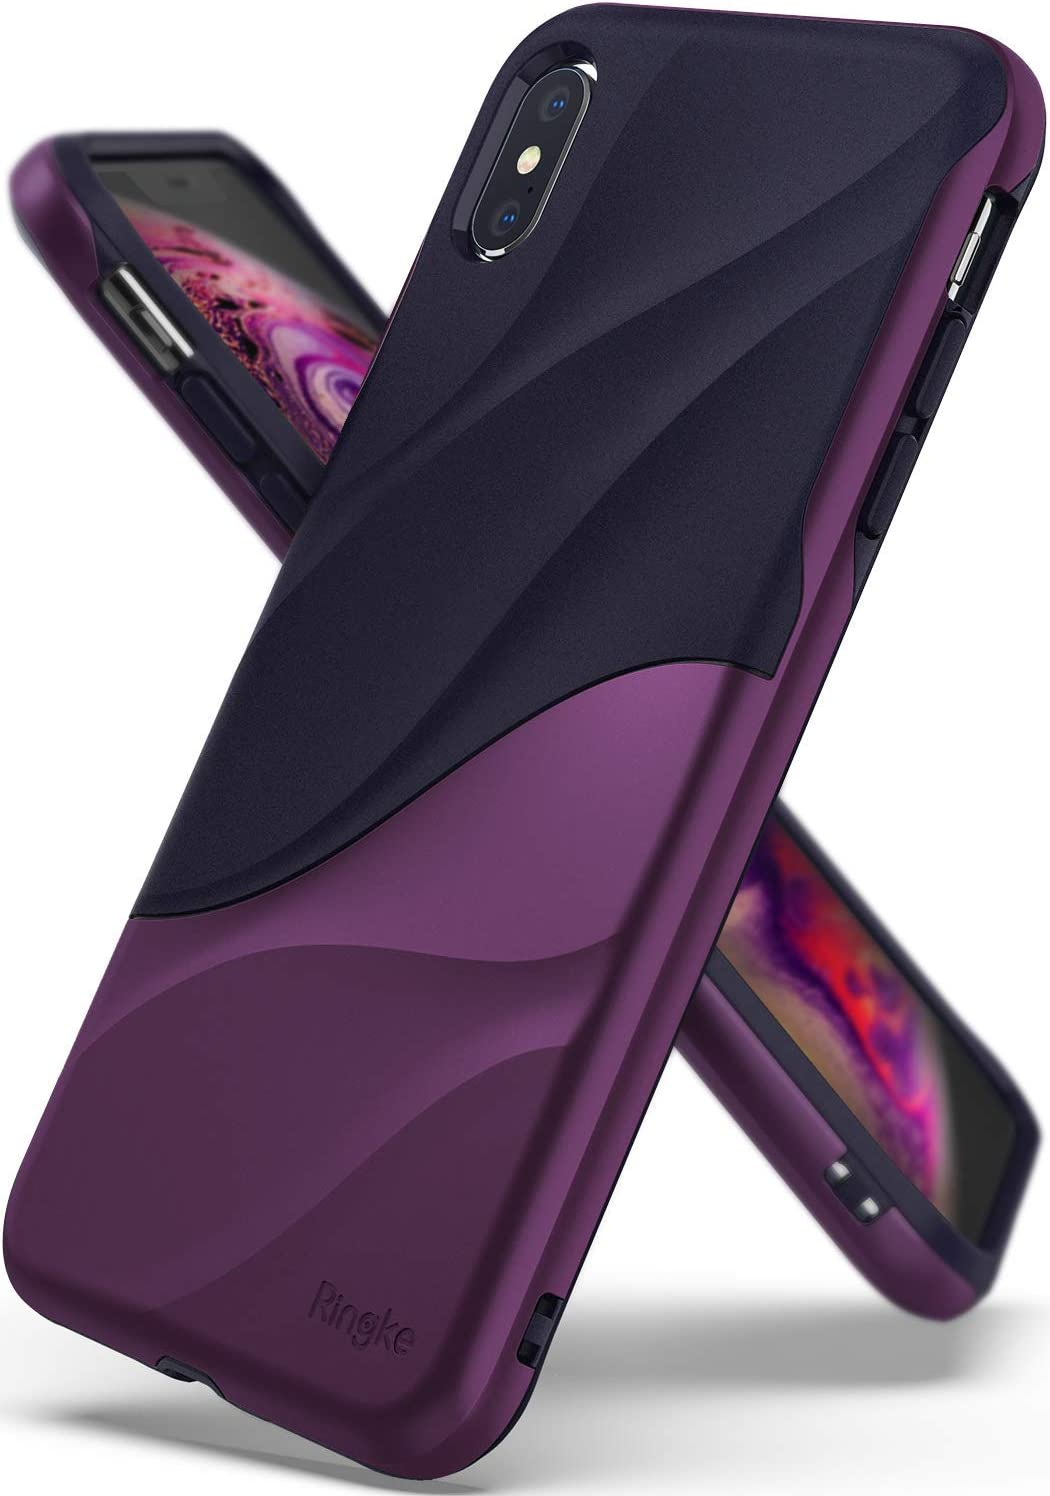 Ringke Wave Compatible with iPhone Xs Max Case, Dual Layer Heavy Duty 3D Textured Cover - Metallic Purple